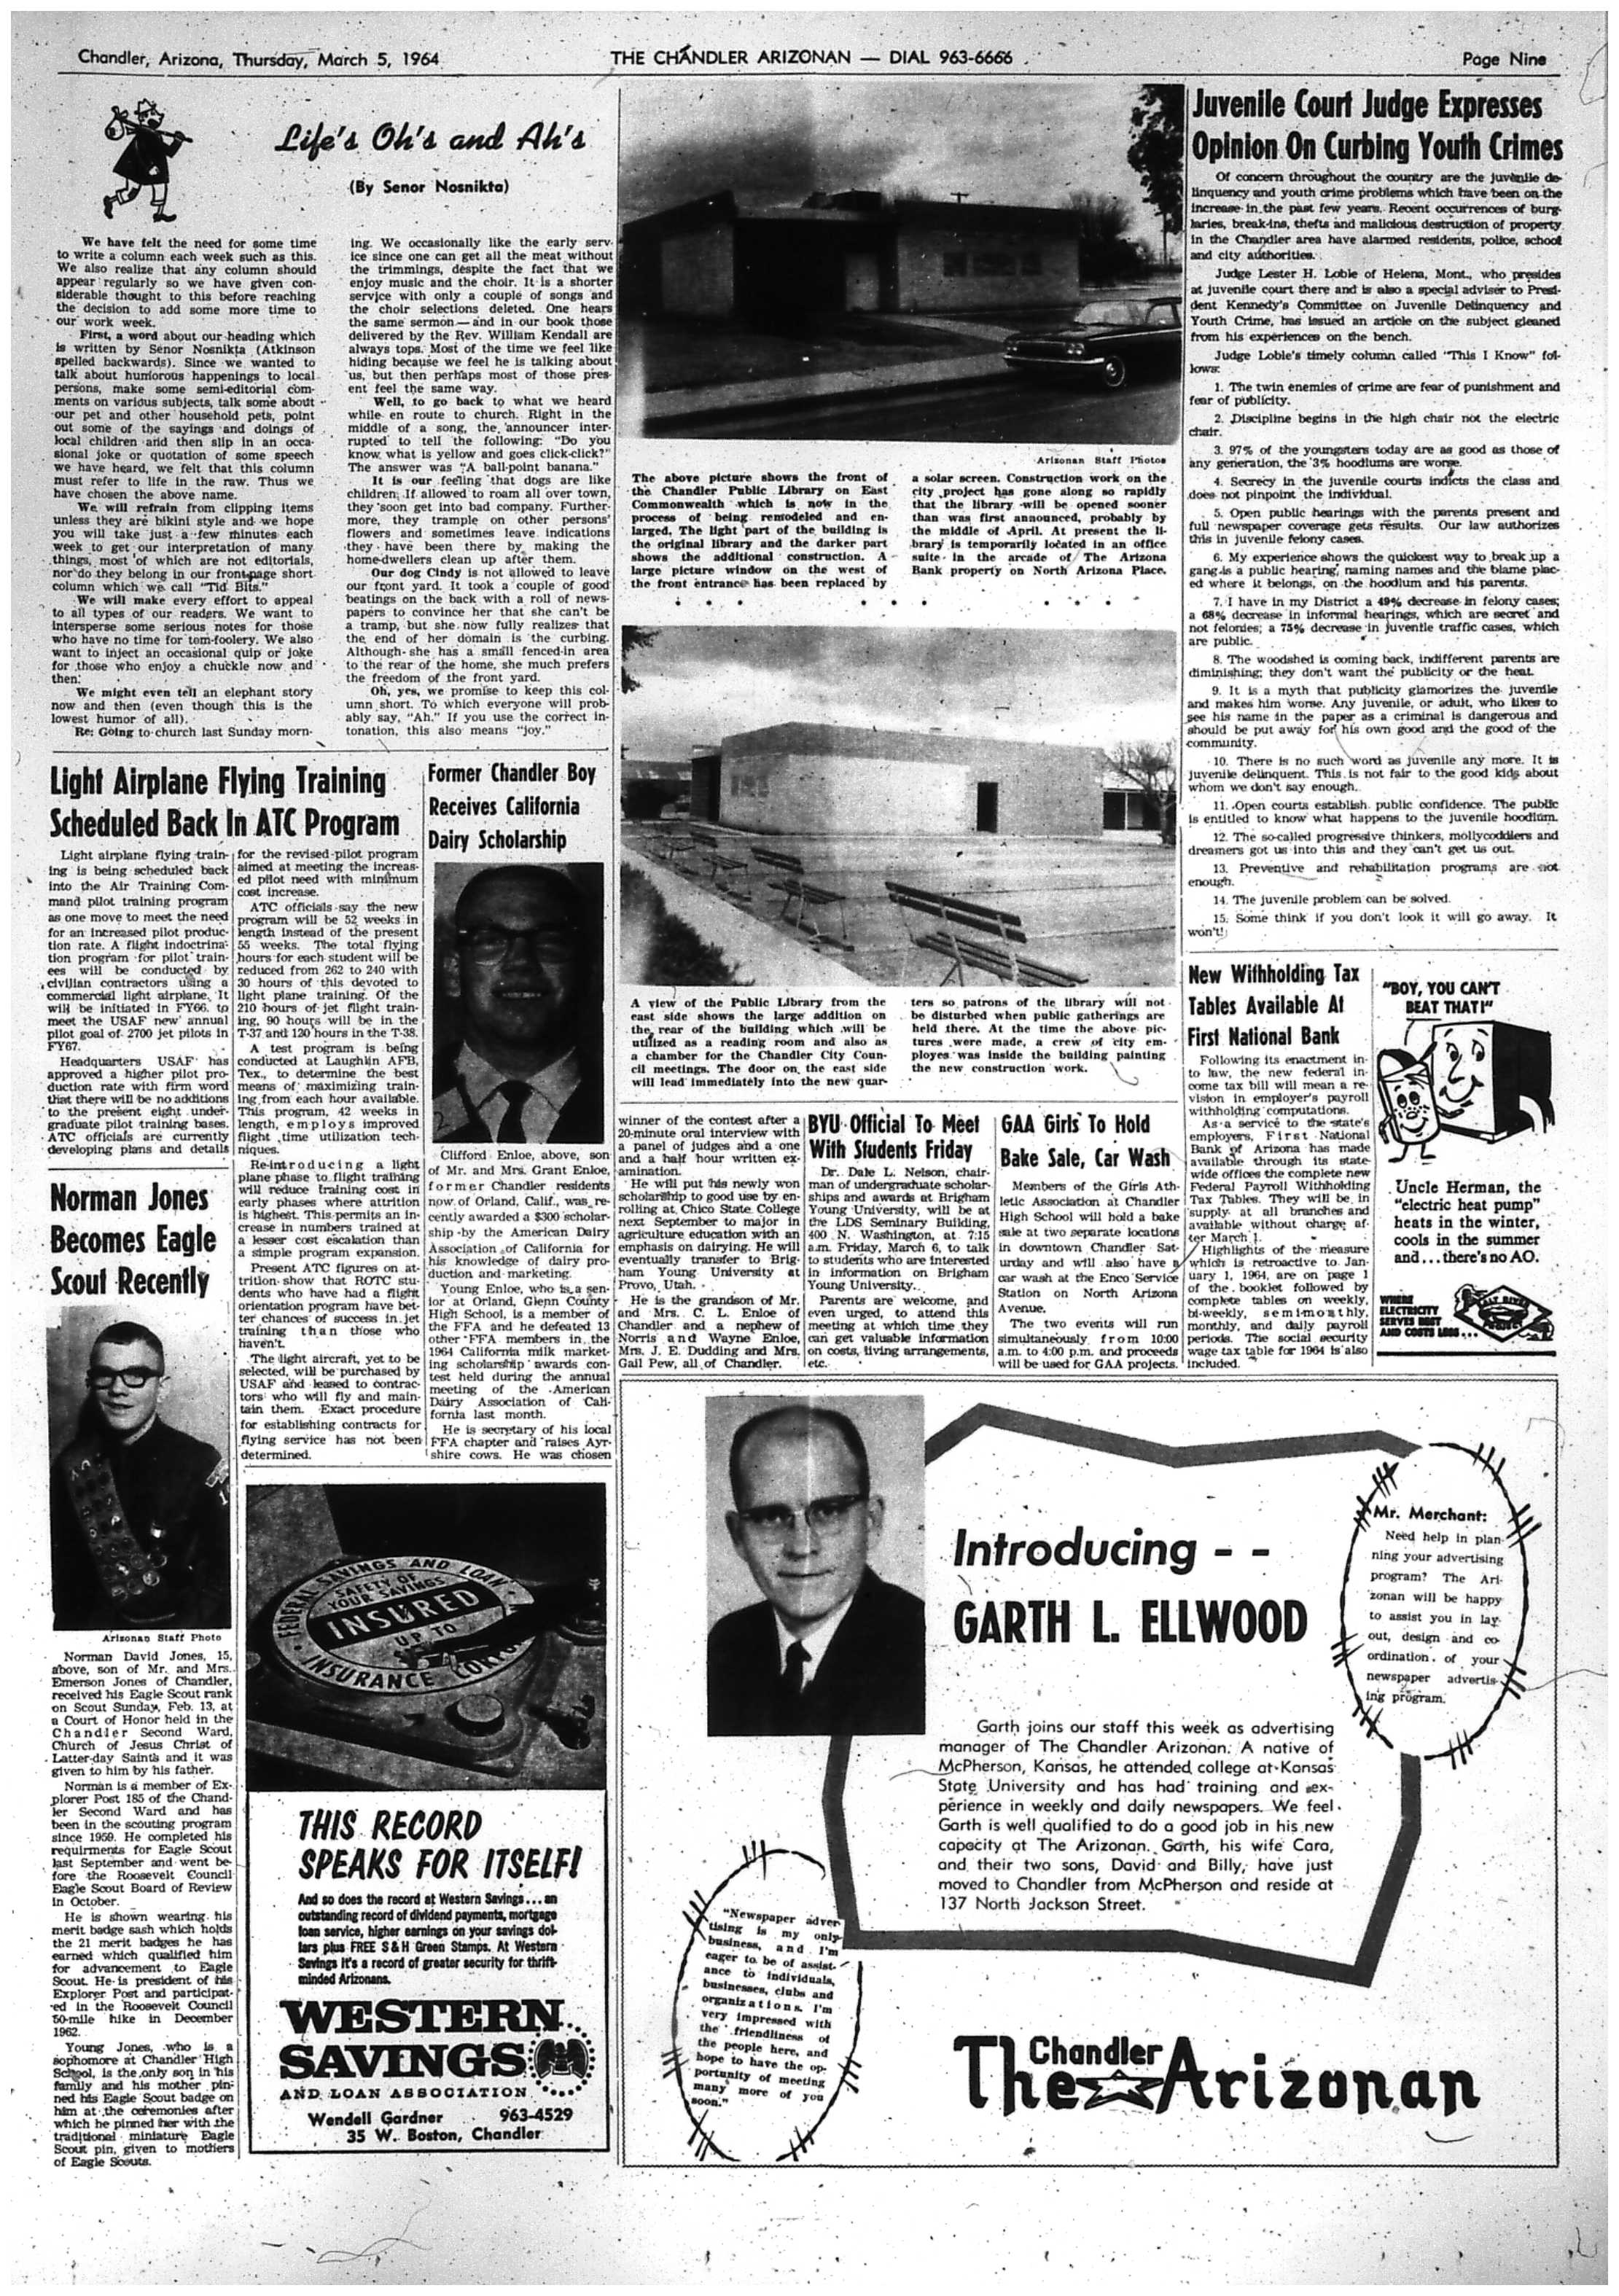 03-05-1964 - Page 9 .jpg